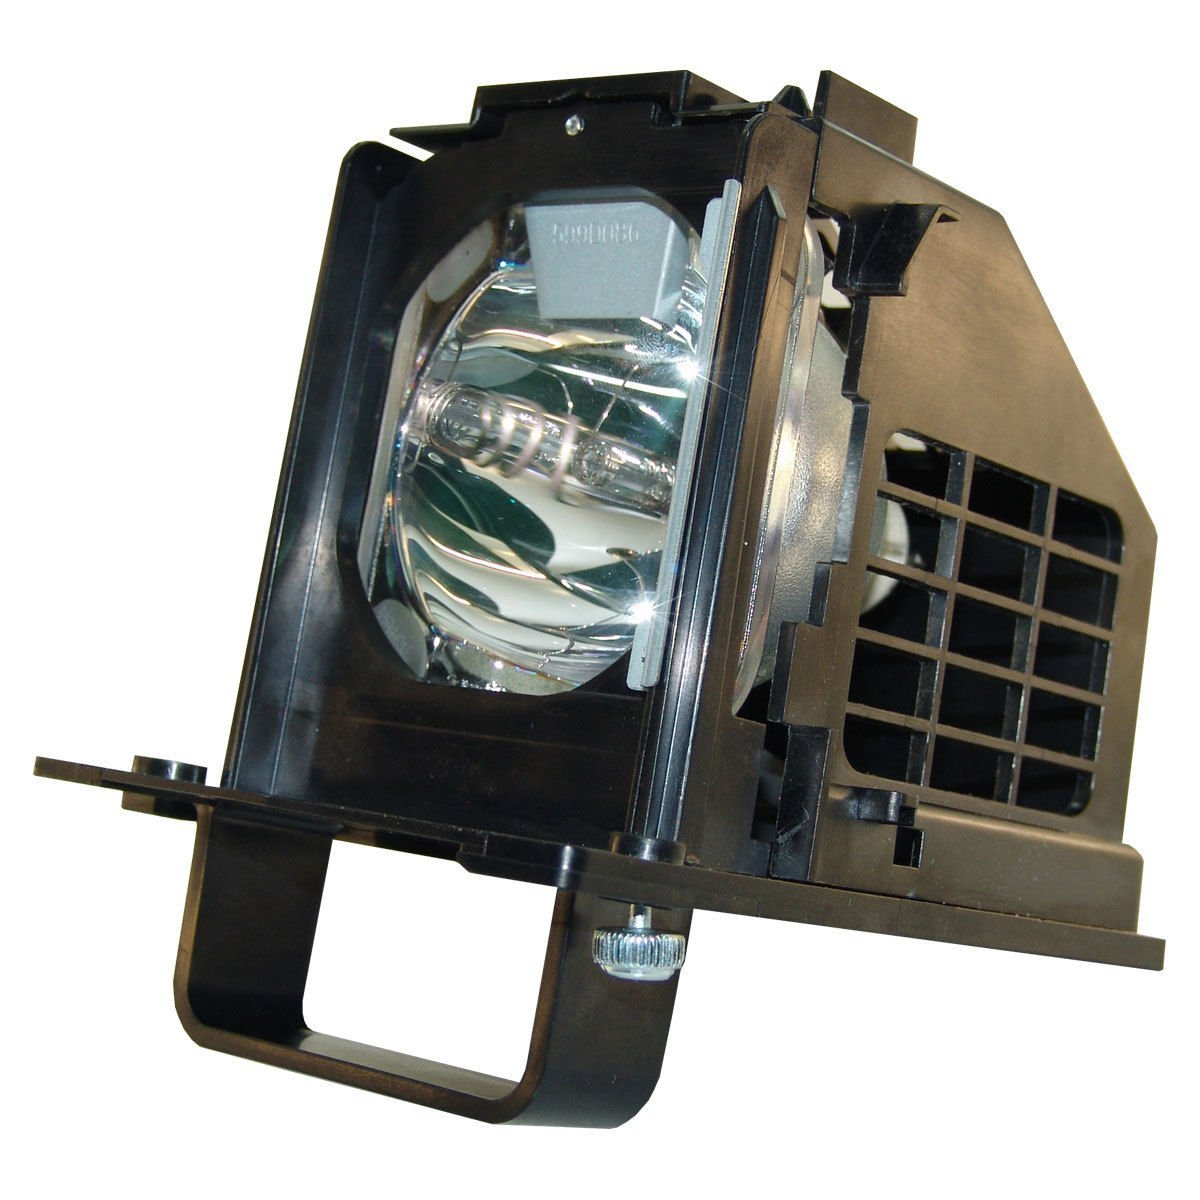 WOWSAI TV Replacement Lamp in Housing for Mitsubishi WD-73638, WD-73738, WD-73838, WD-73C10, WD-82738, WD-82838 Televisions